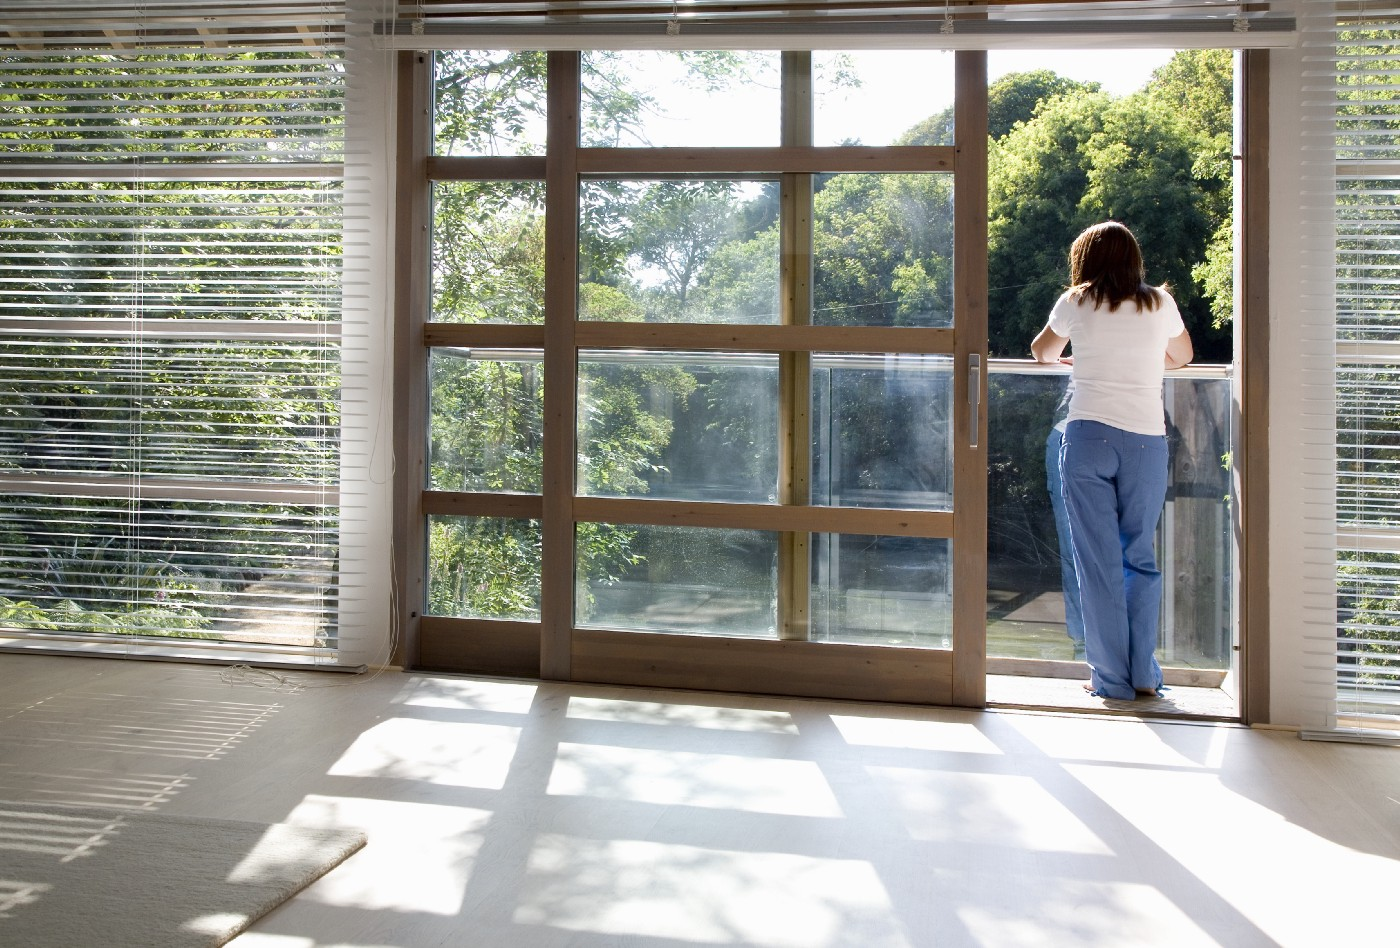 View through an empty room of a woman standing on a balcony.